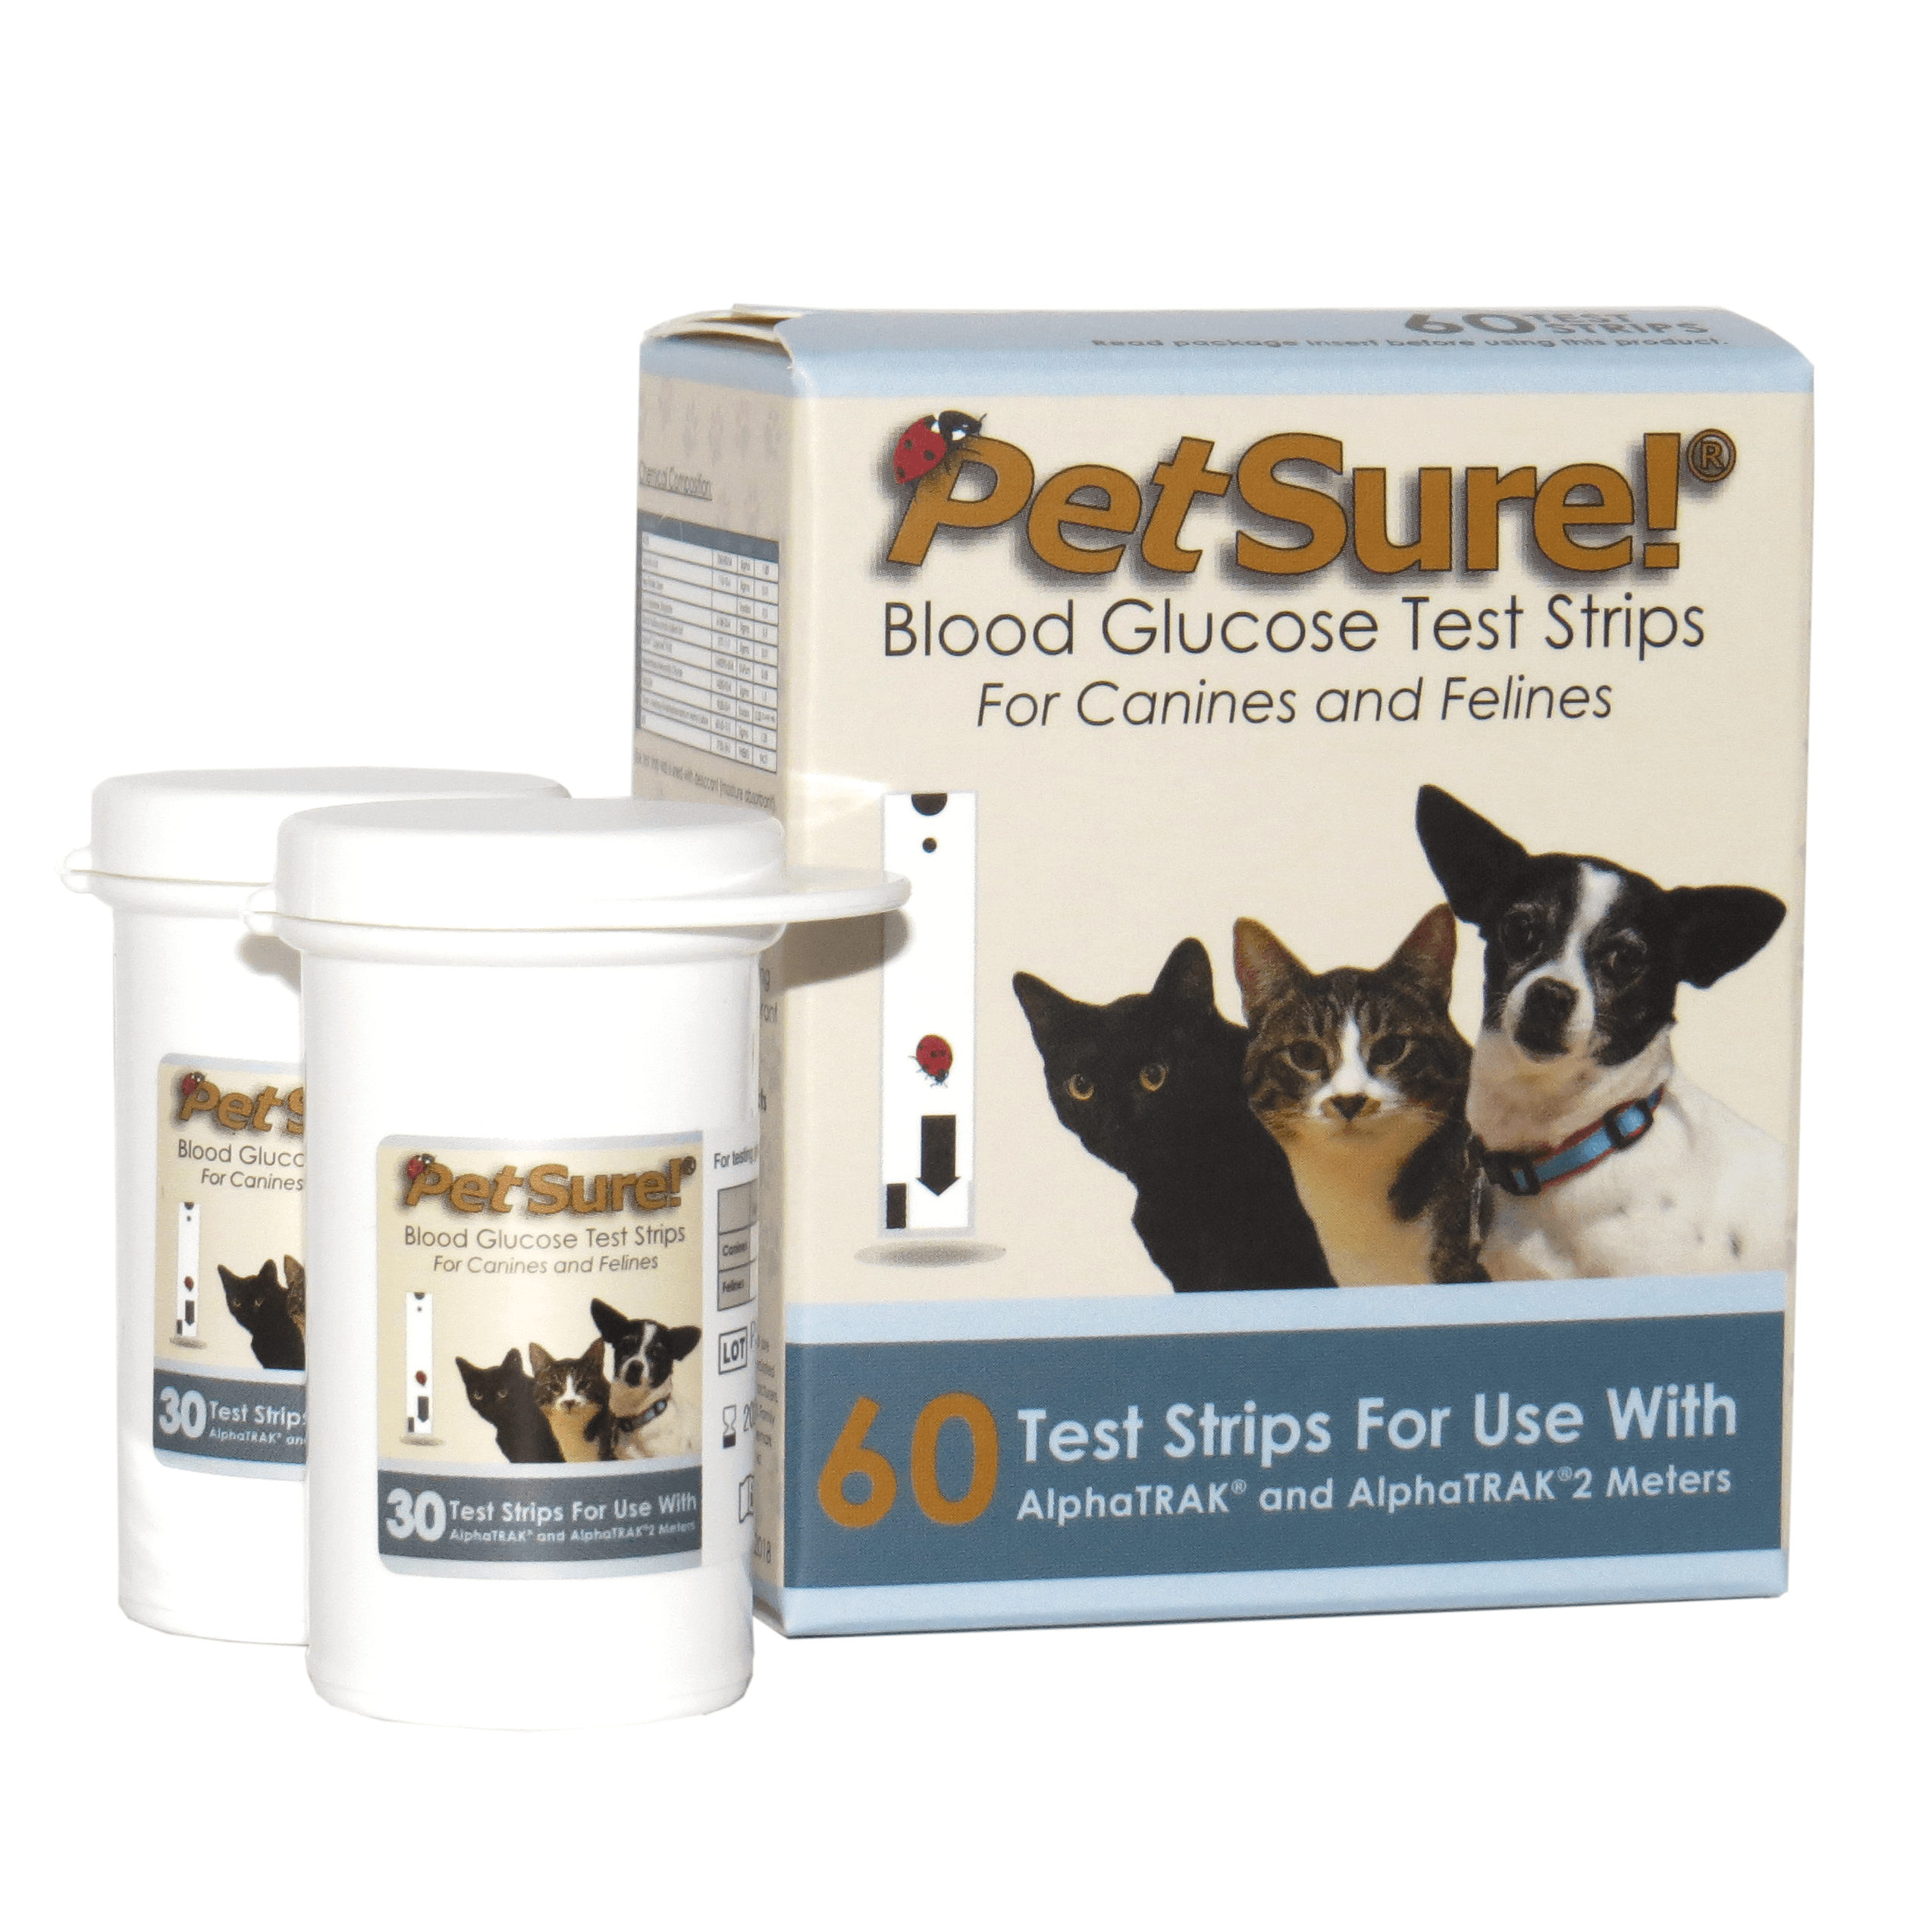 PetSure! 60ct Test Strips - Blood Glucose Testing for Dogs & Cats - works with AlphaTRAK and AlphaTRAK2 Meters